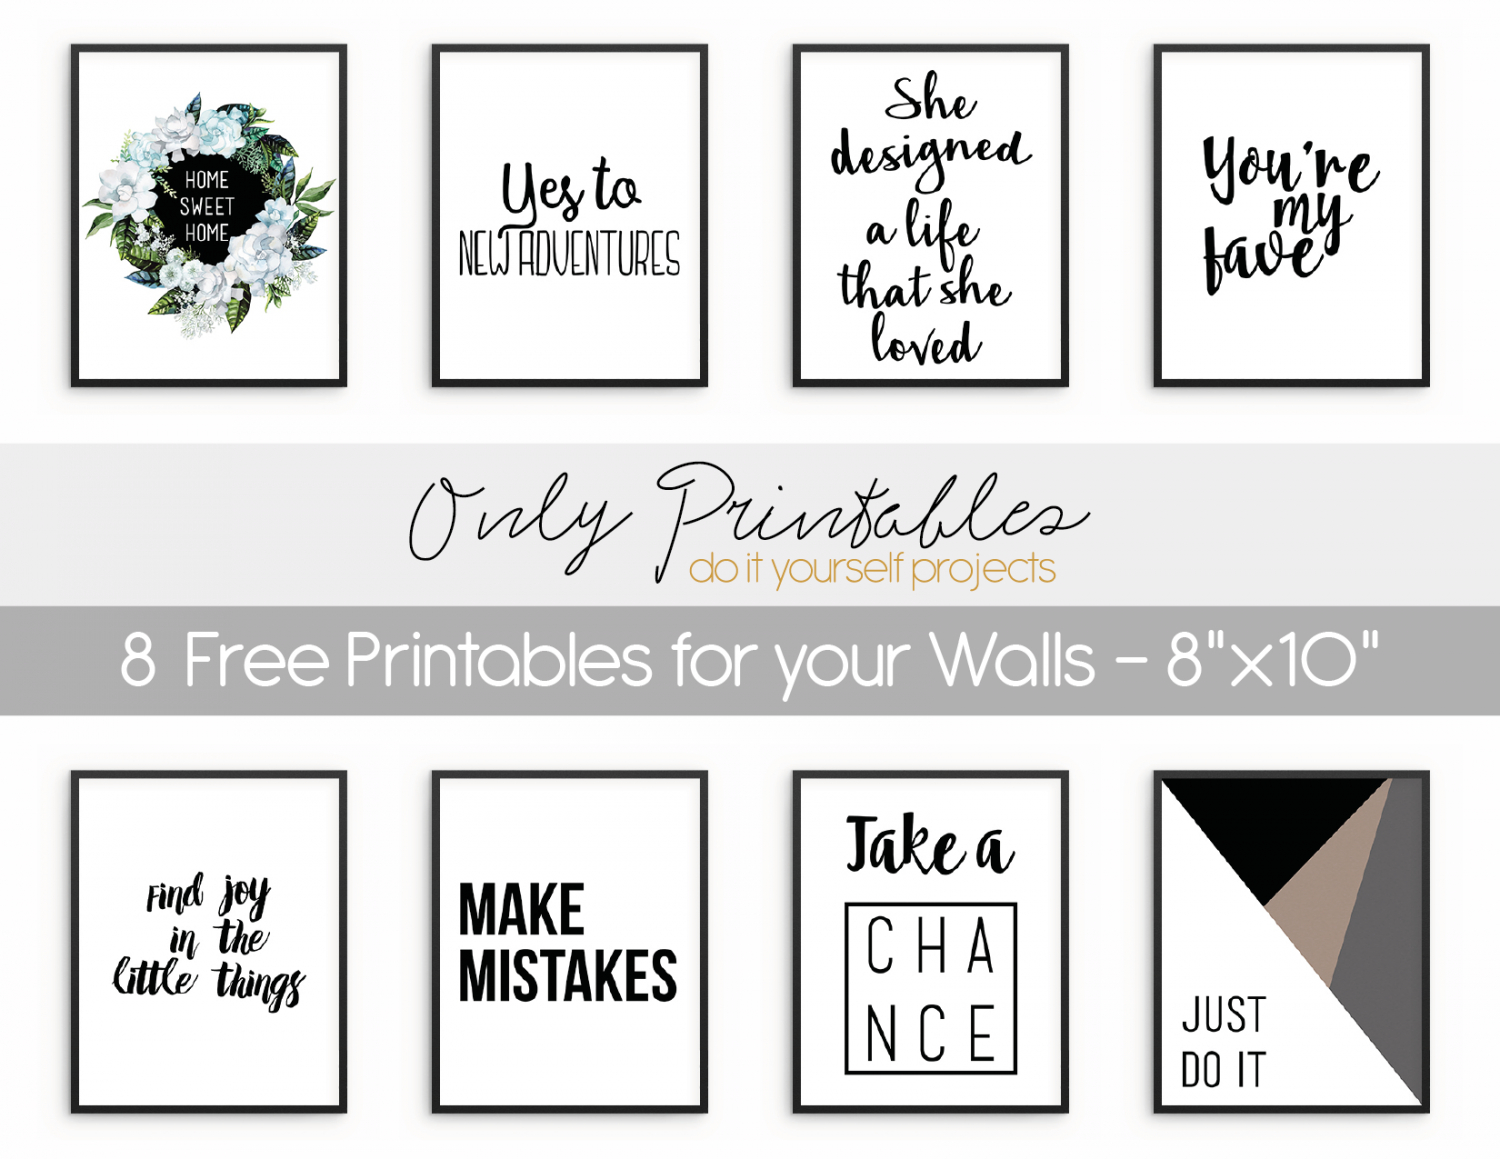 Only Printables | 8 Free Printables For Your Walls - Free Printable Artwork For Home